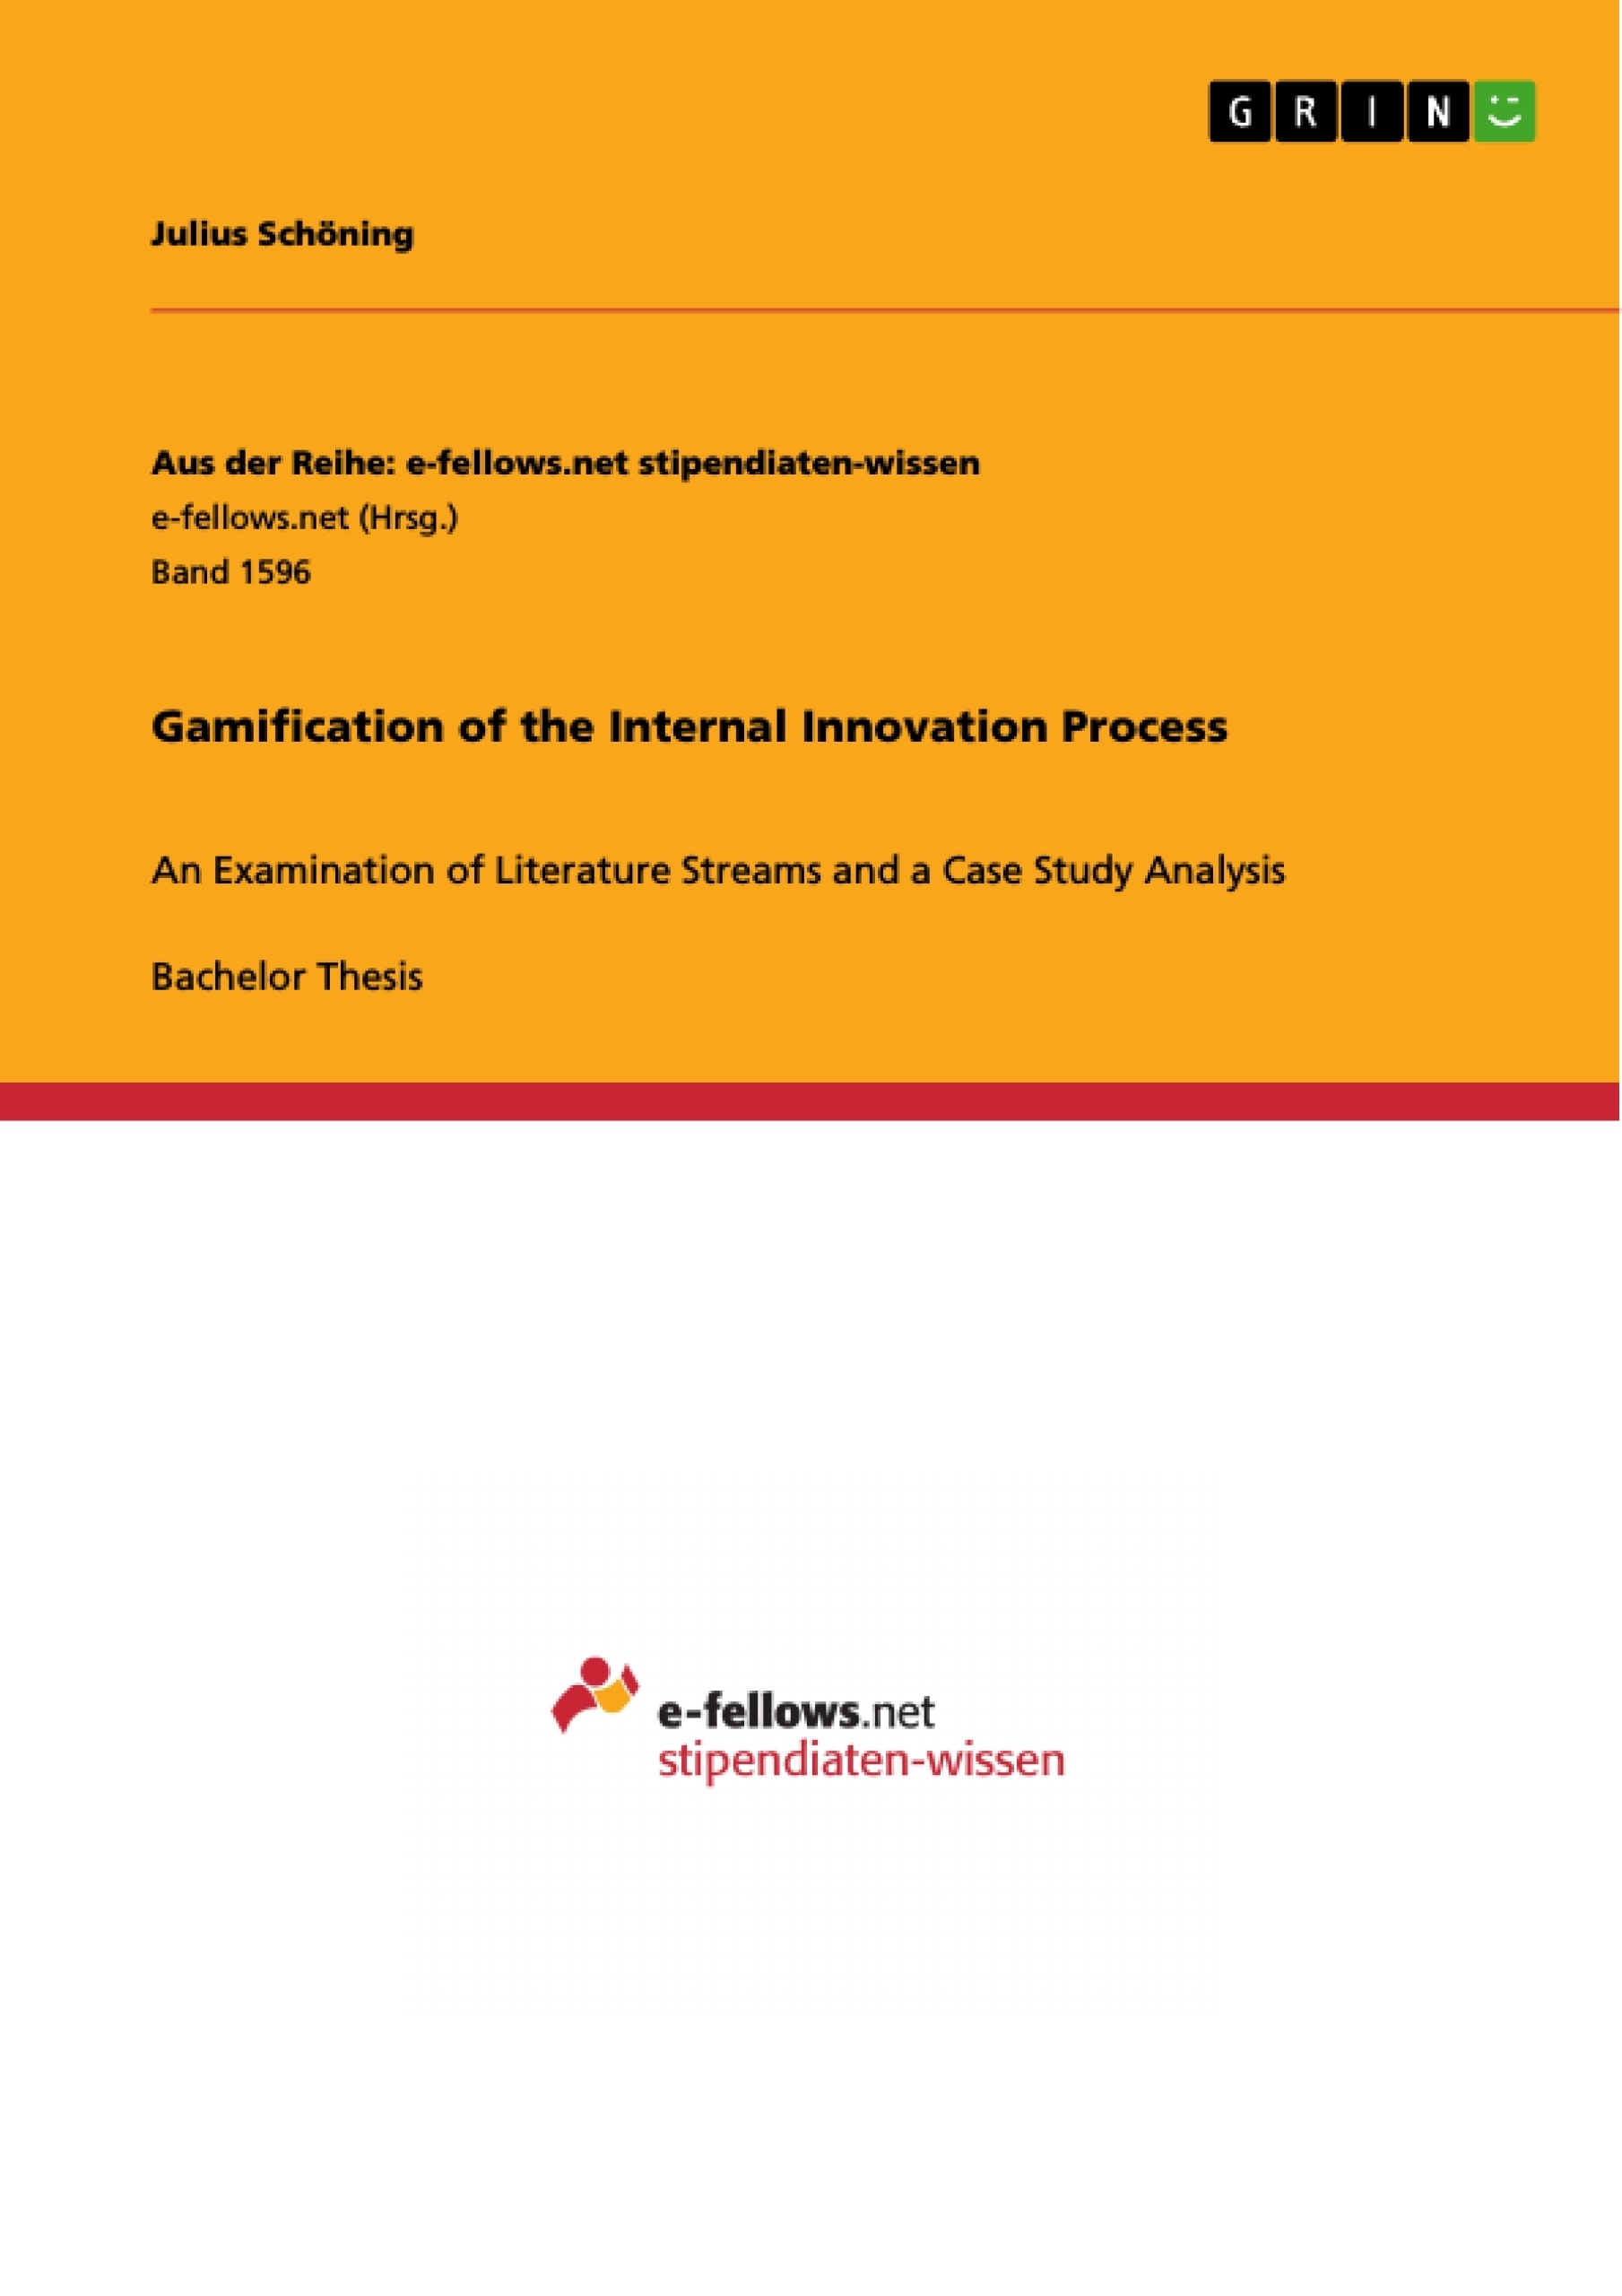 Title: Gamification of the Internal Innovation Process